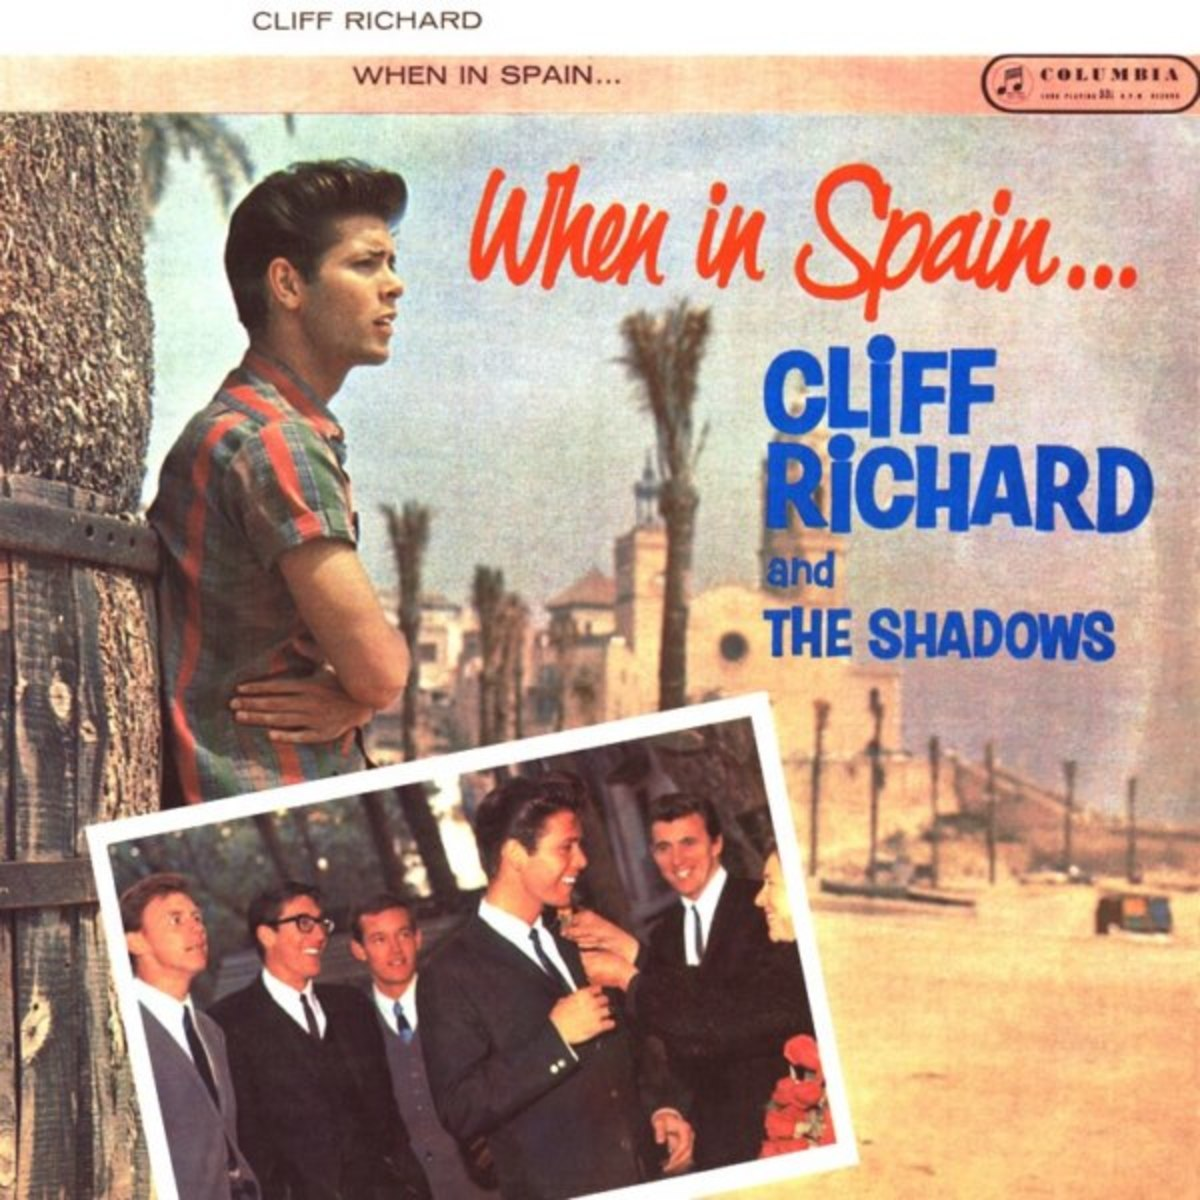 Cliff Richard's 1963 album' When in Spain'